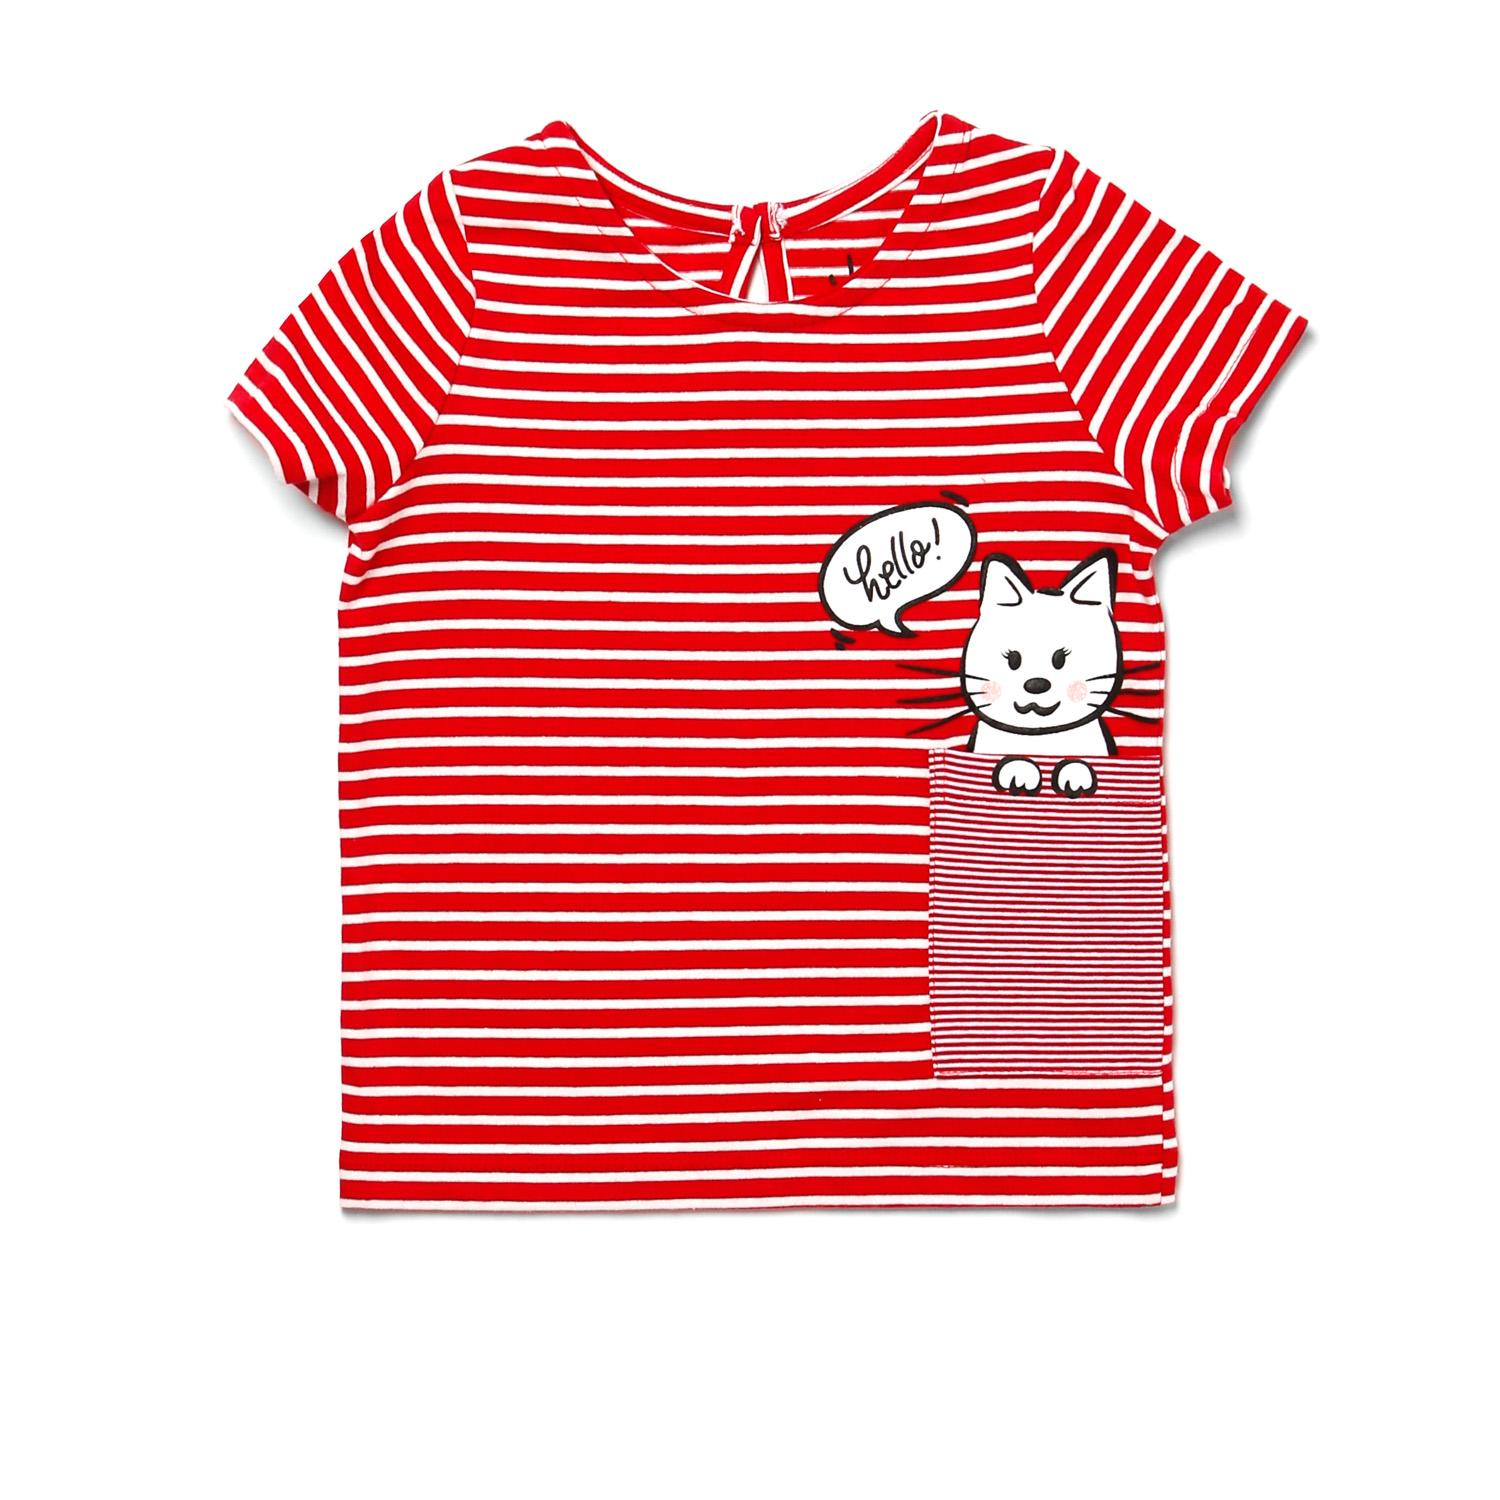 b524f072dc42 Young Girls Clothing for sale - Baby Clothing for Girls online ...